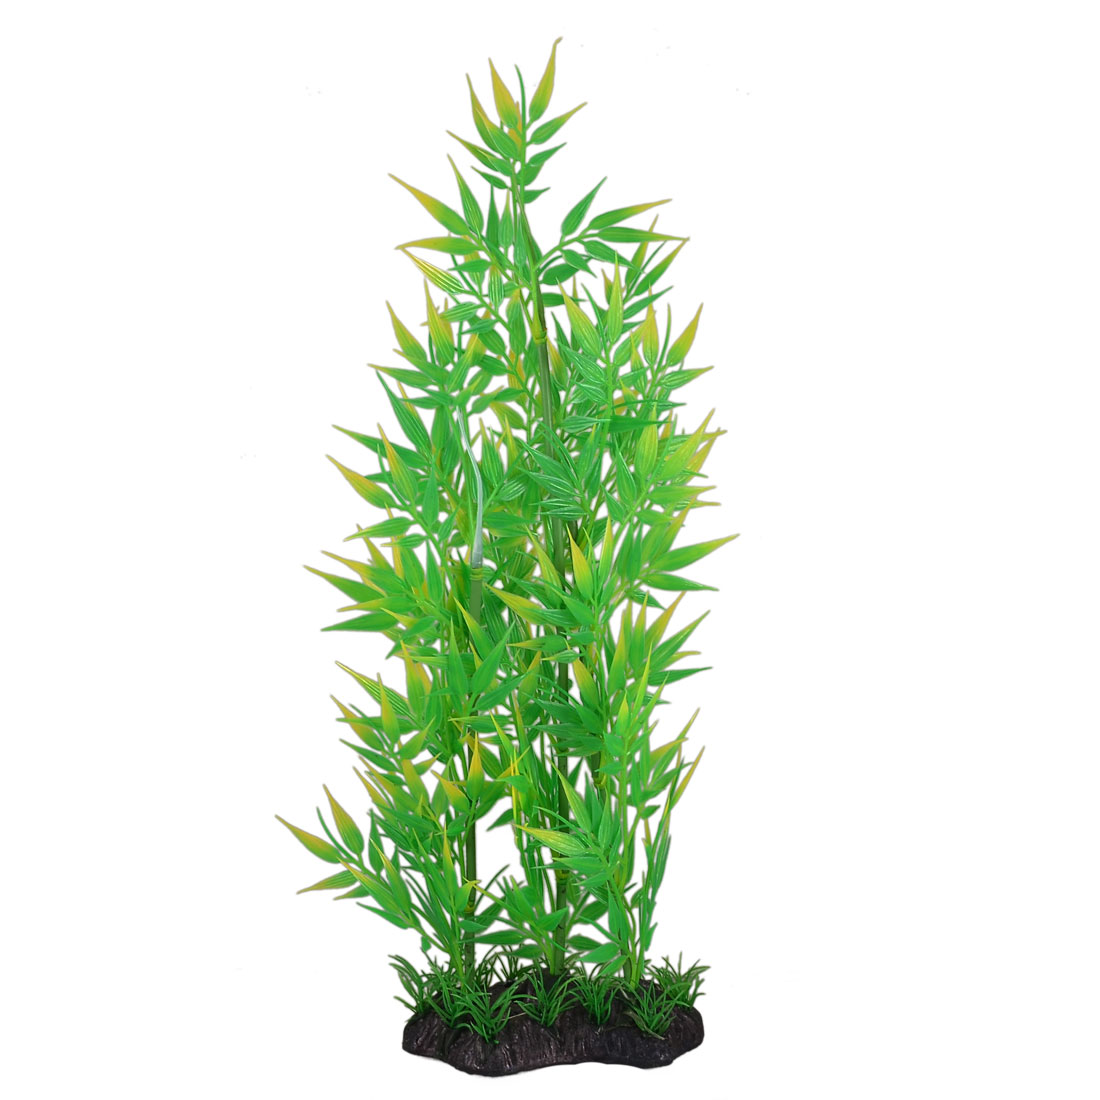 37cm Height Green Yellow Plastic Bamboo Decoration Aquarium Plant